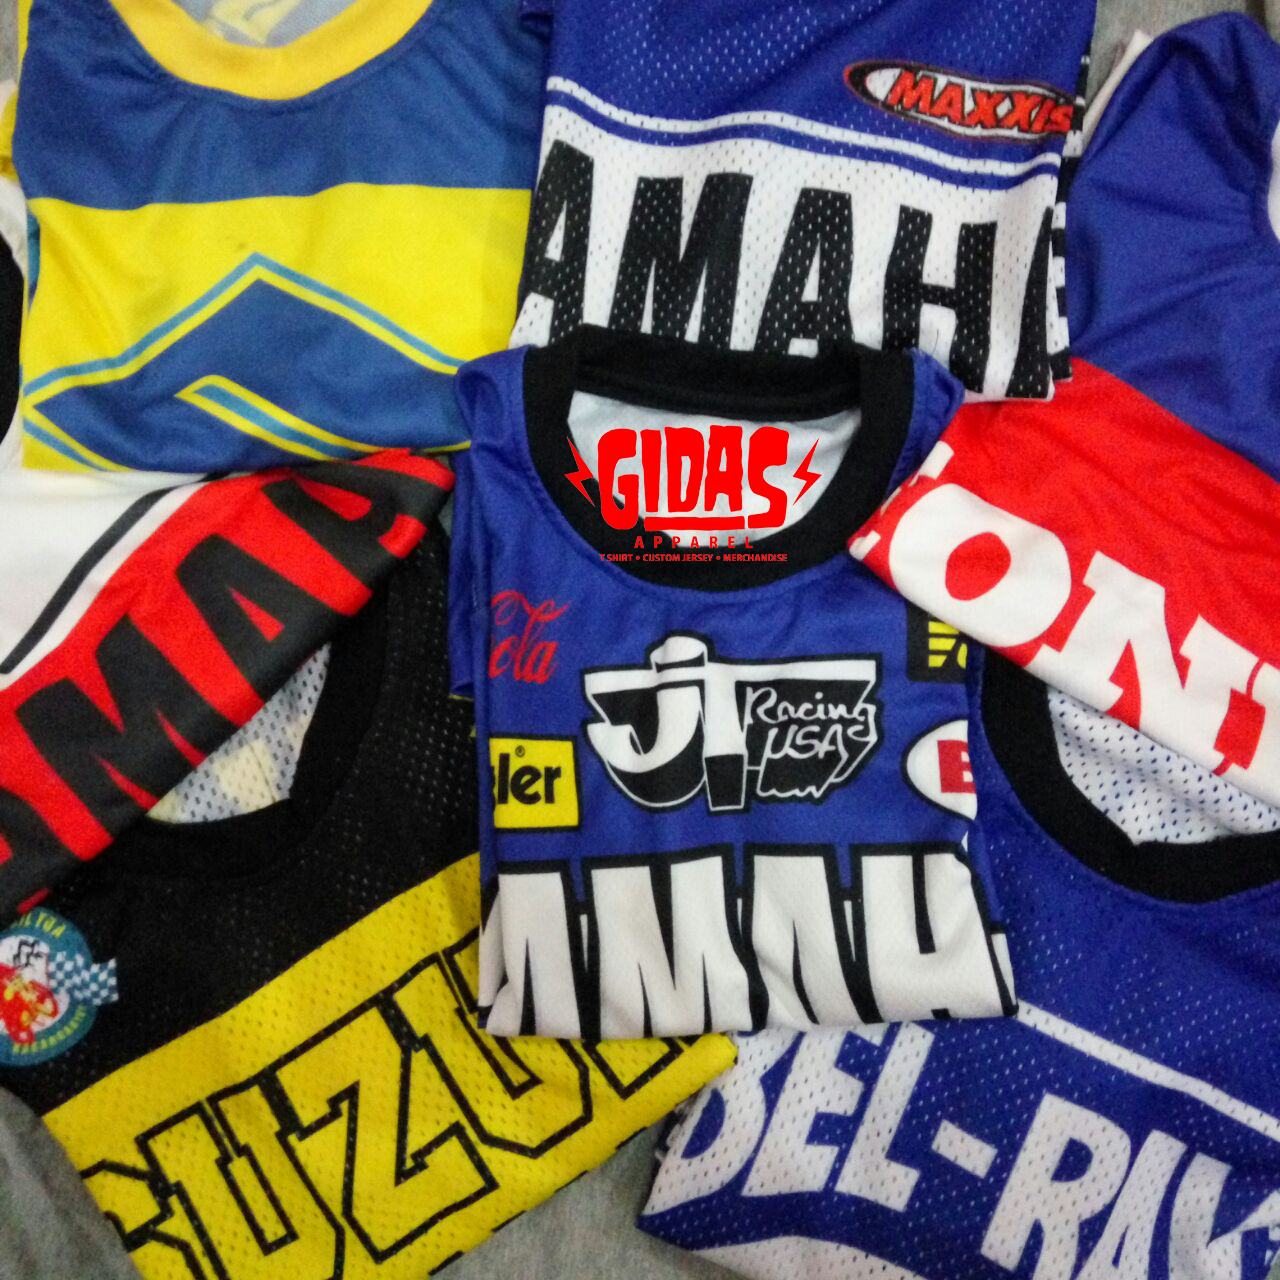 Gidas Apparel Custom Jersey Vintage Motocross Jersey Whatsapp 082137240629 Email Gidasapp Gmail Com Vintage Mx Vintage Motocross Motocross Motocross Shirts